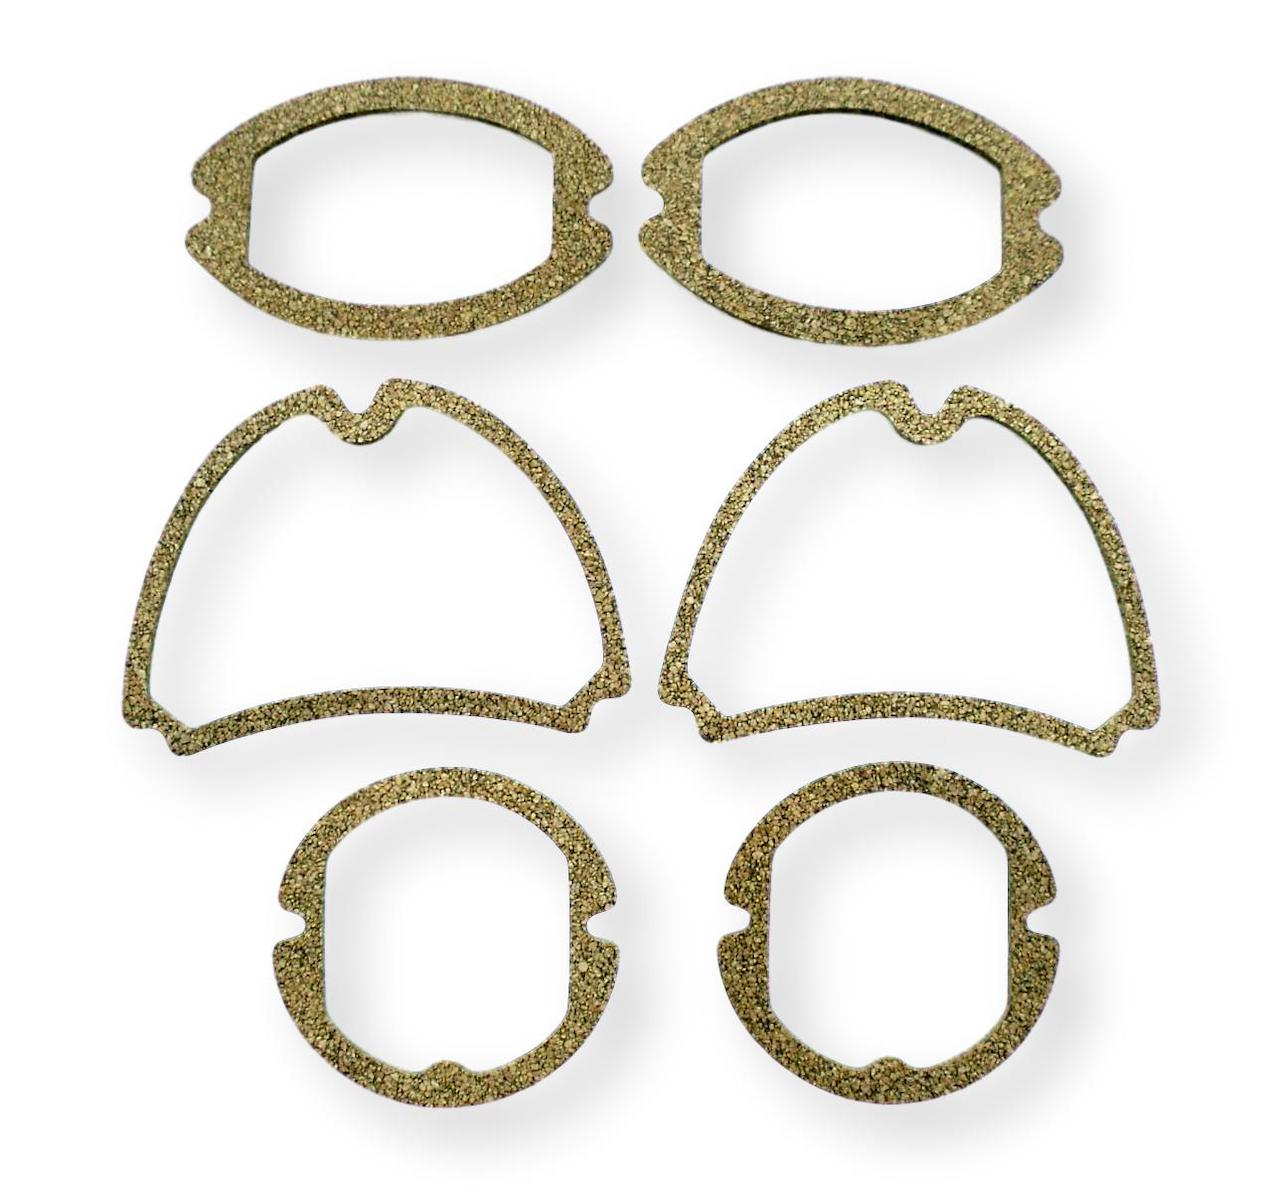 1957 Chevy Lens Gasket Set